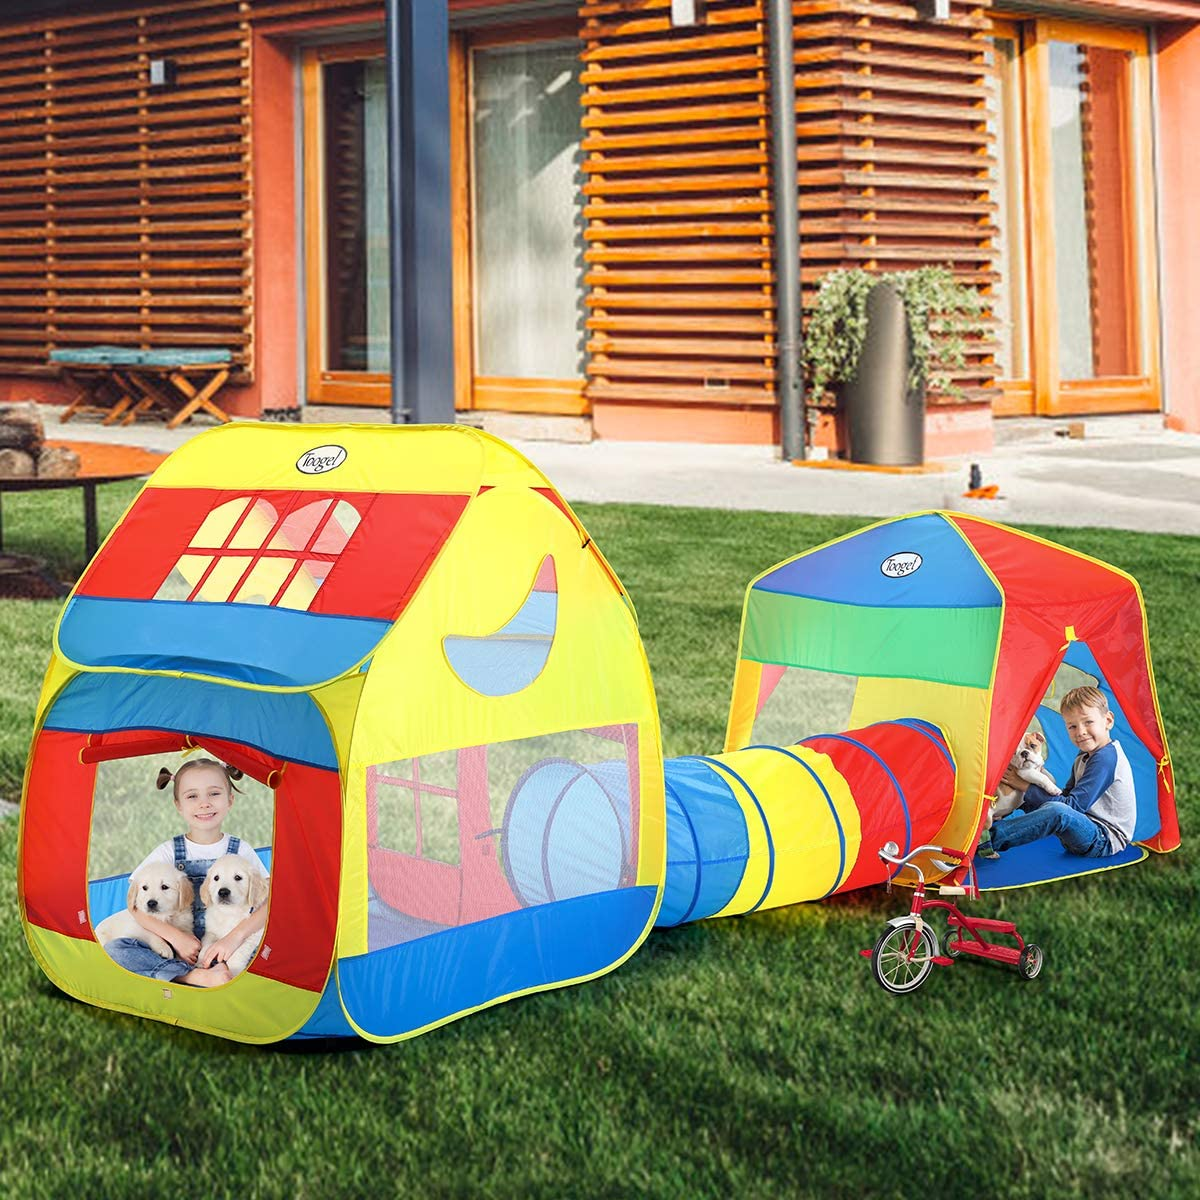 Chenway Pop Up Tunnel with Tent Foldable Childrens Tent Train Two-in-one Crawling Tunnel Tube Game House Tent